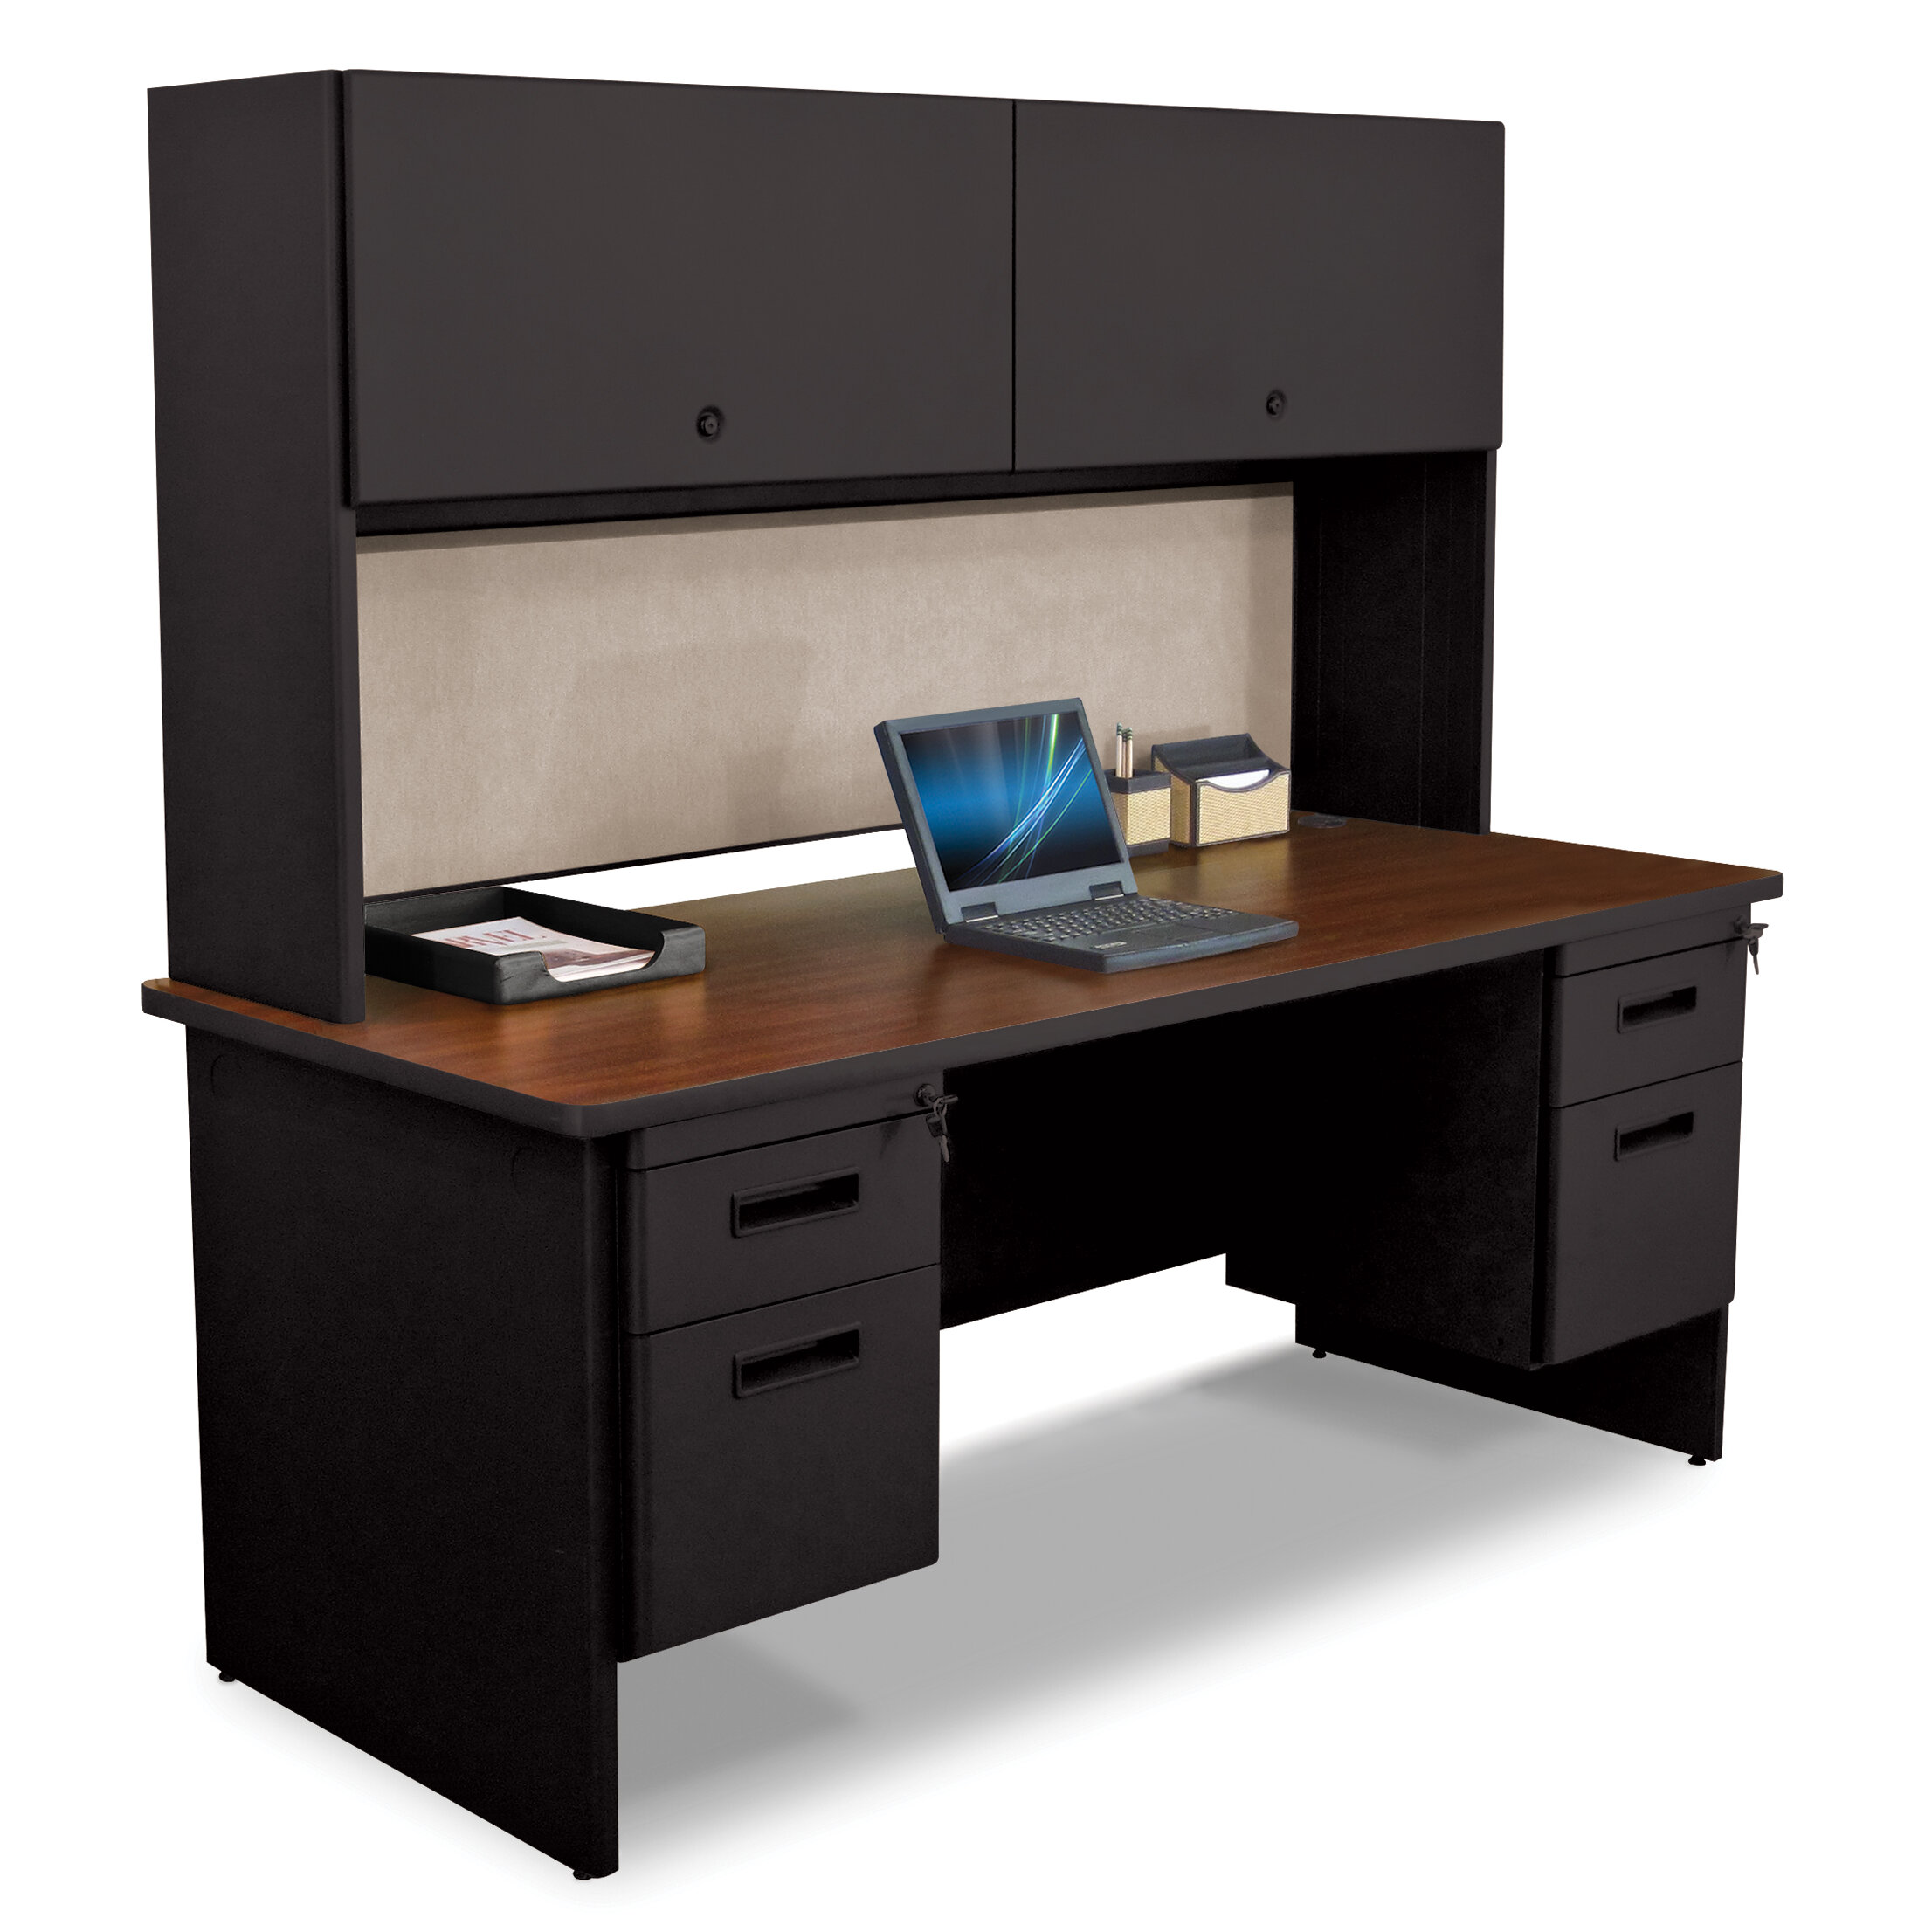 products l lifestyle computer color techni modern mobili storage shaped and with cabinet file rta desk es espresso